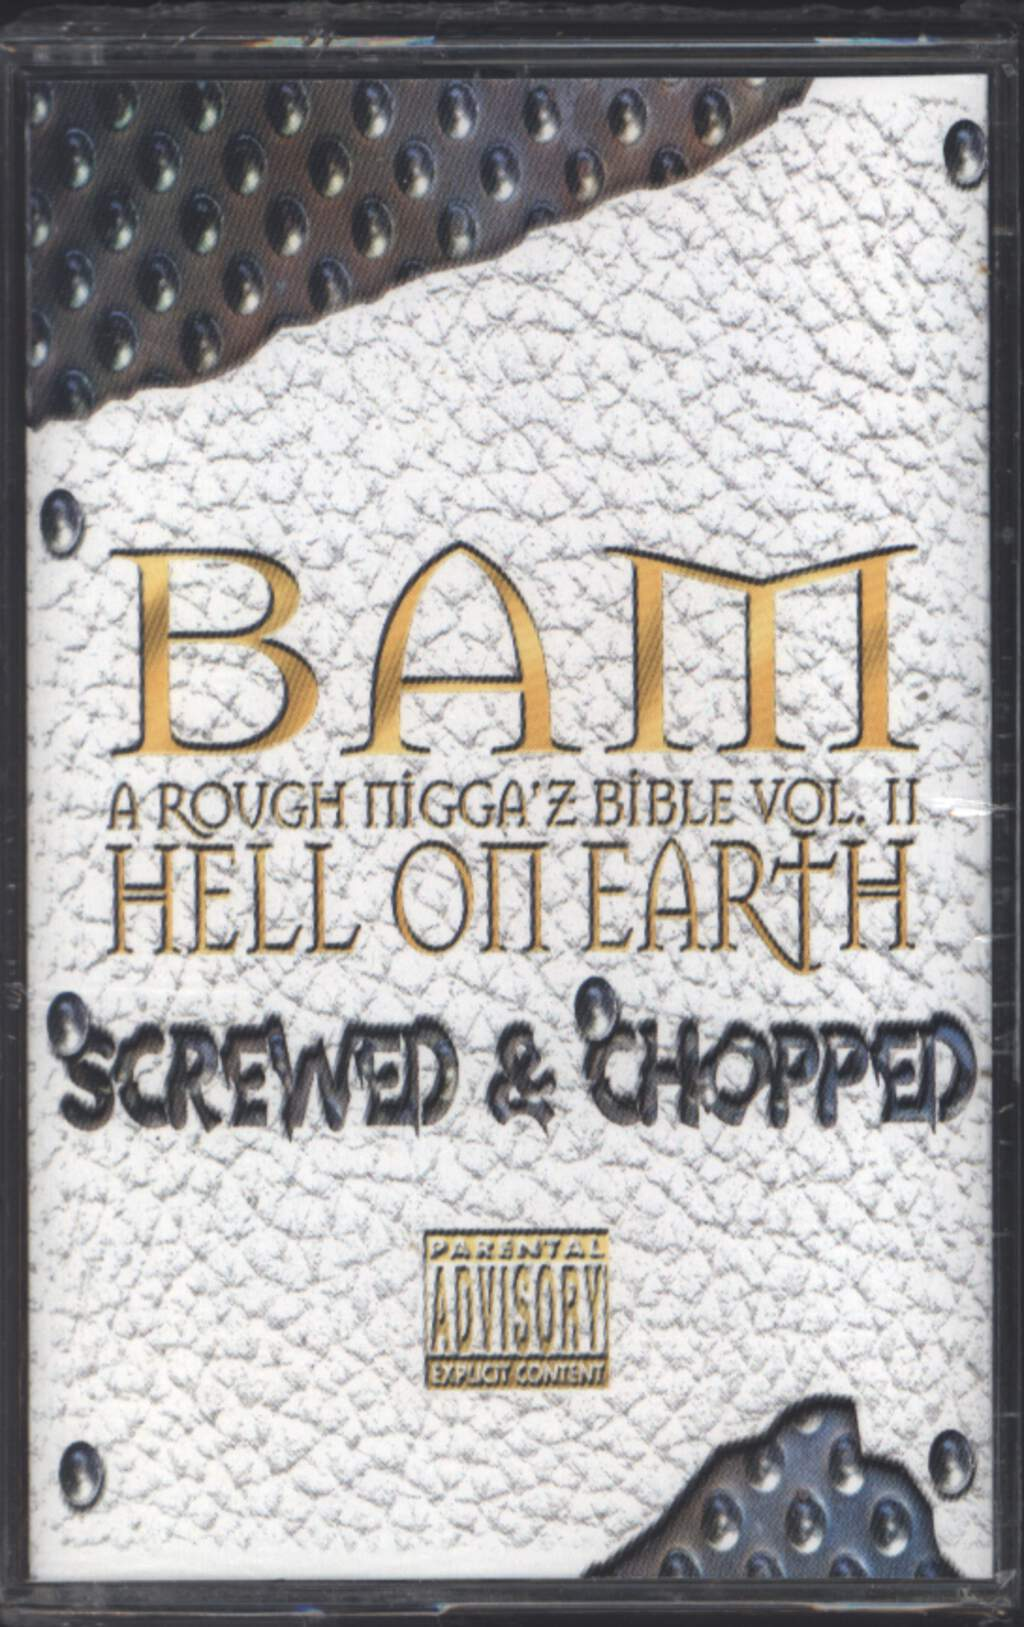 BAM: A Rough Nigga'z Bible Vol. II Hell On Earth - Screwed & Chopped, Compact Cassette